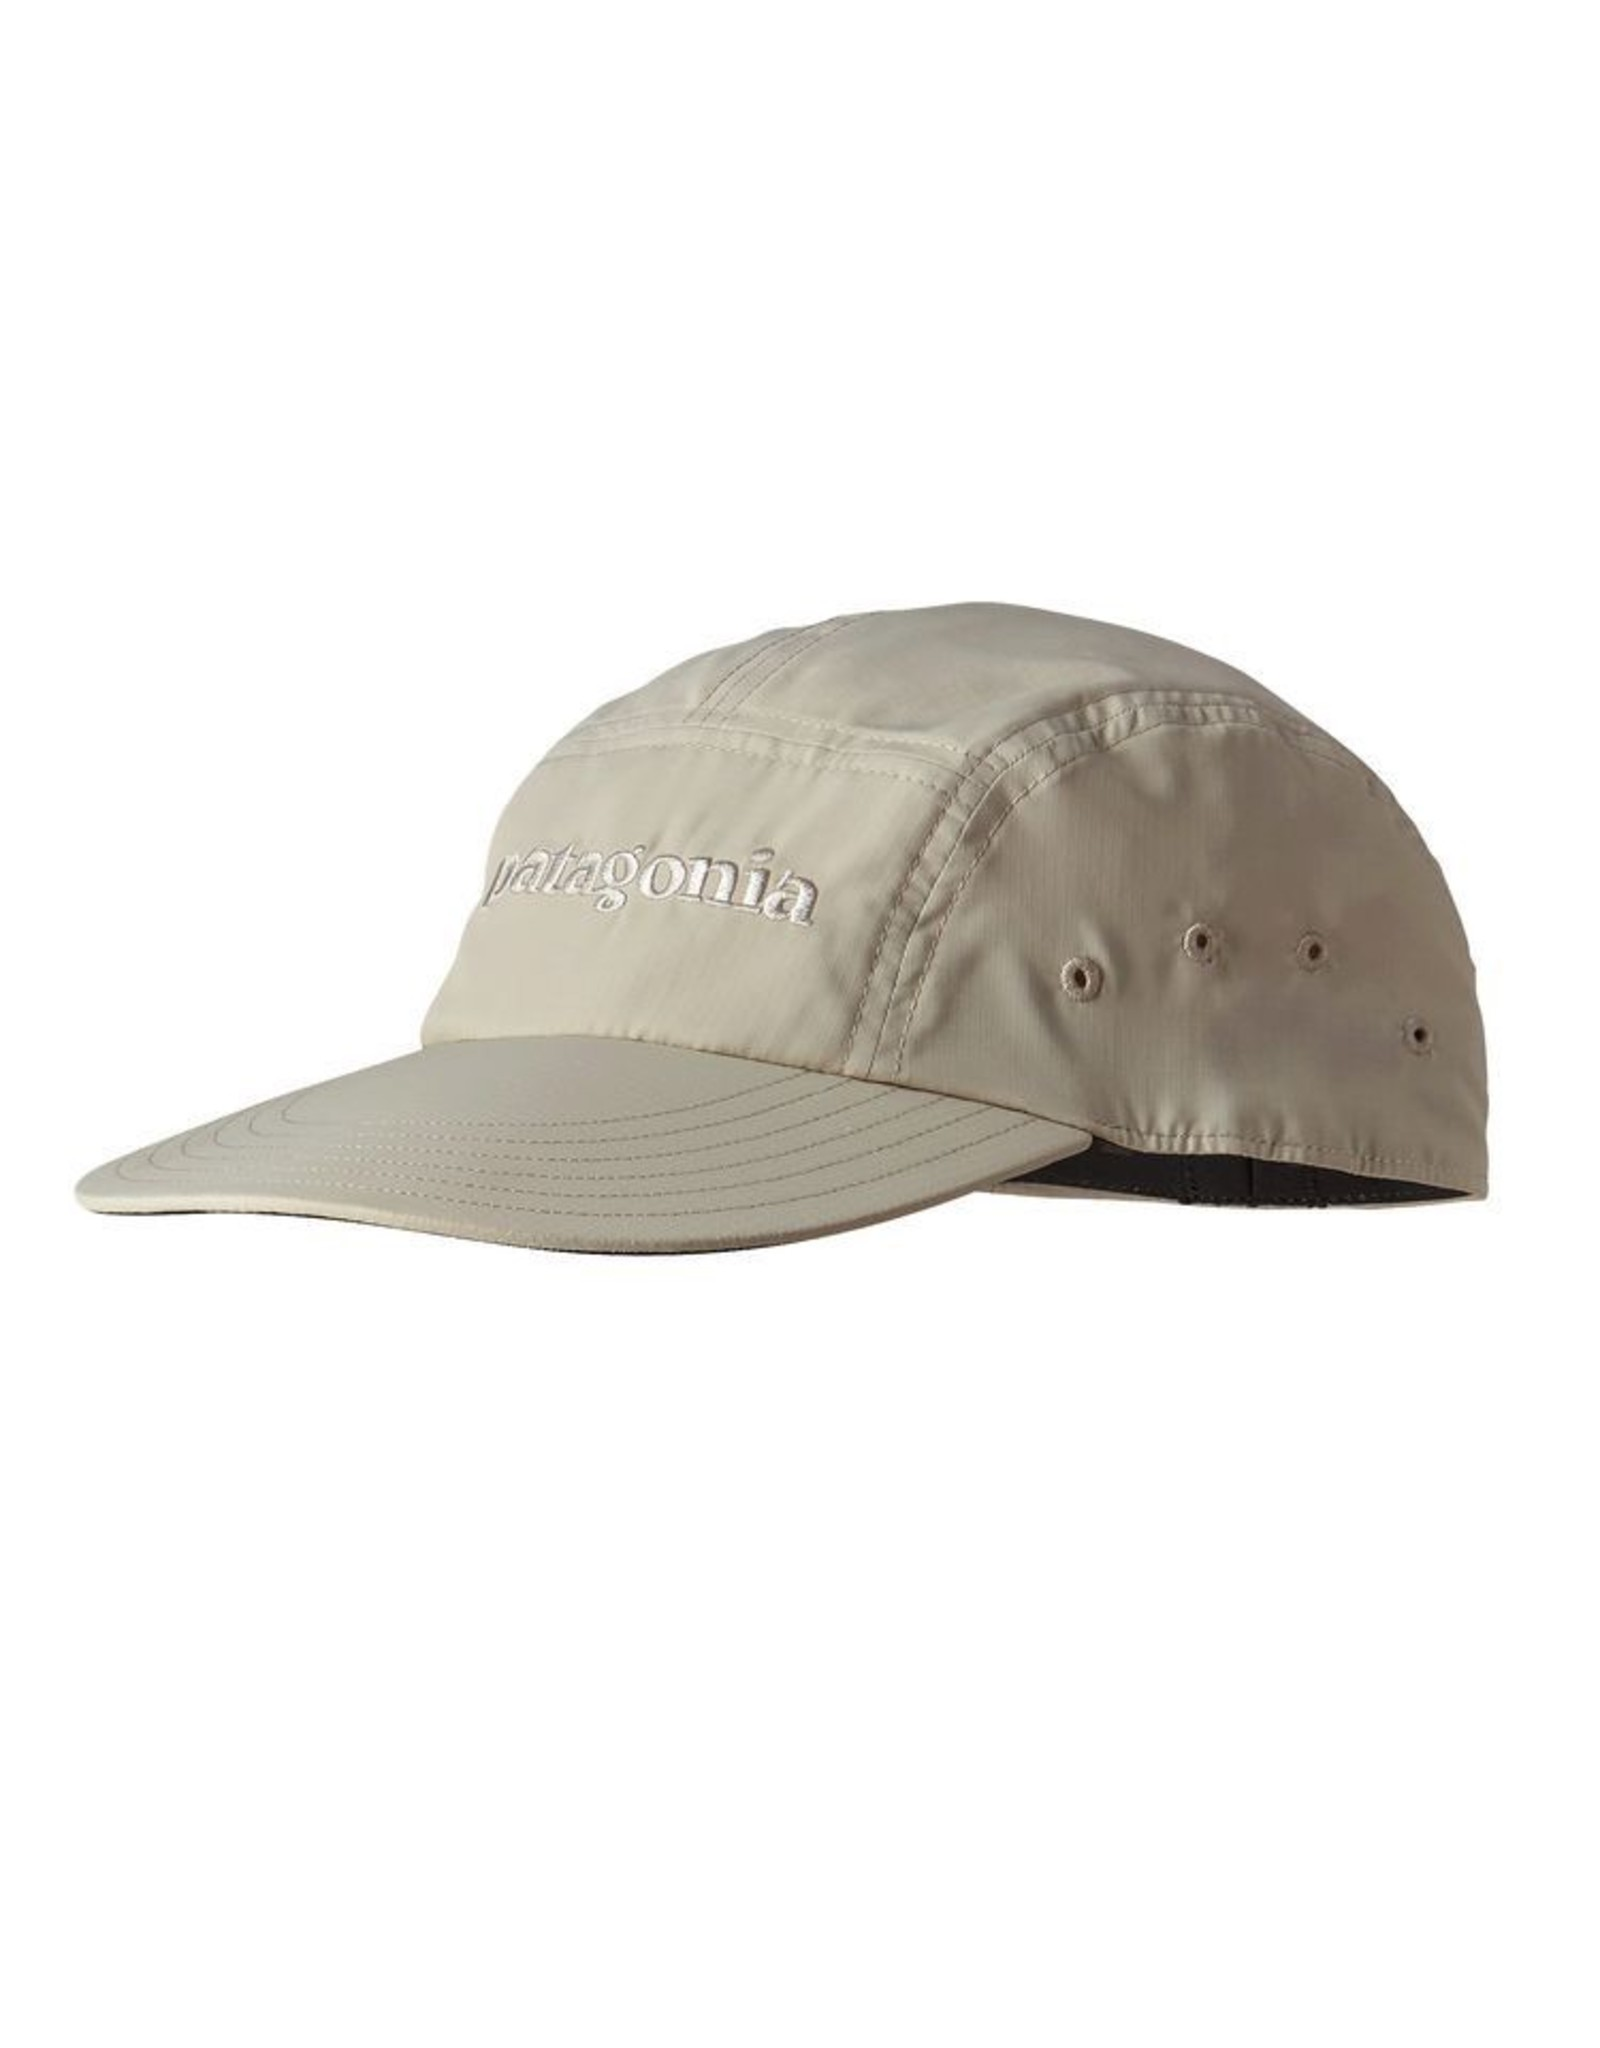 Made for warm, sunny conditions, a lightweight, fast-drying cap with an extra-long bill that provides excellent coverage.